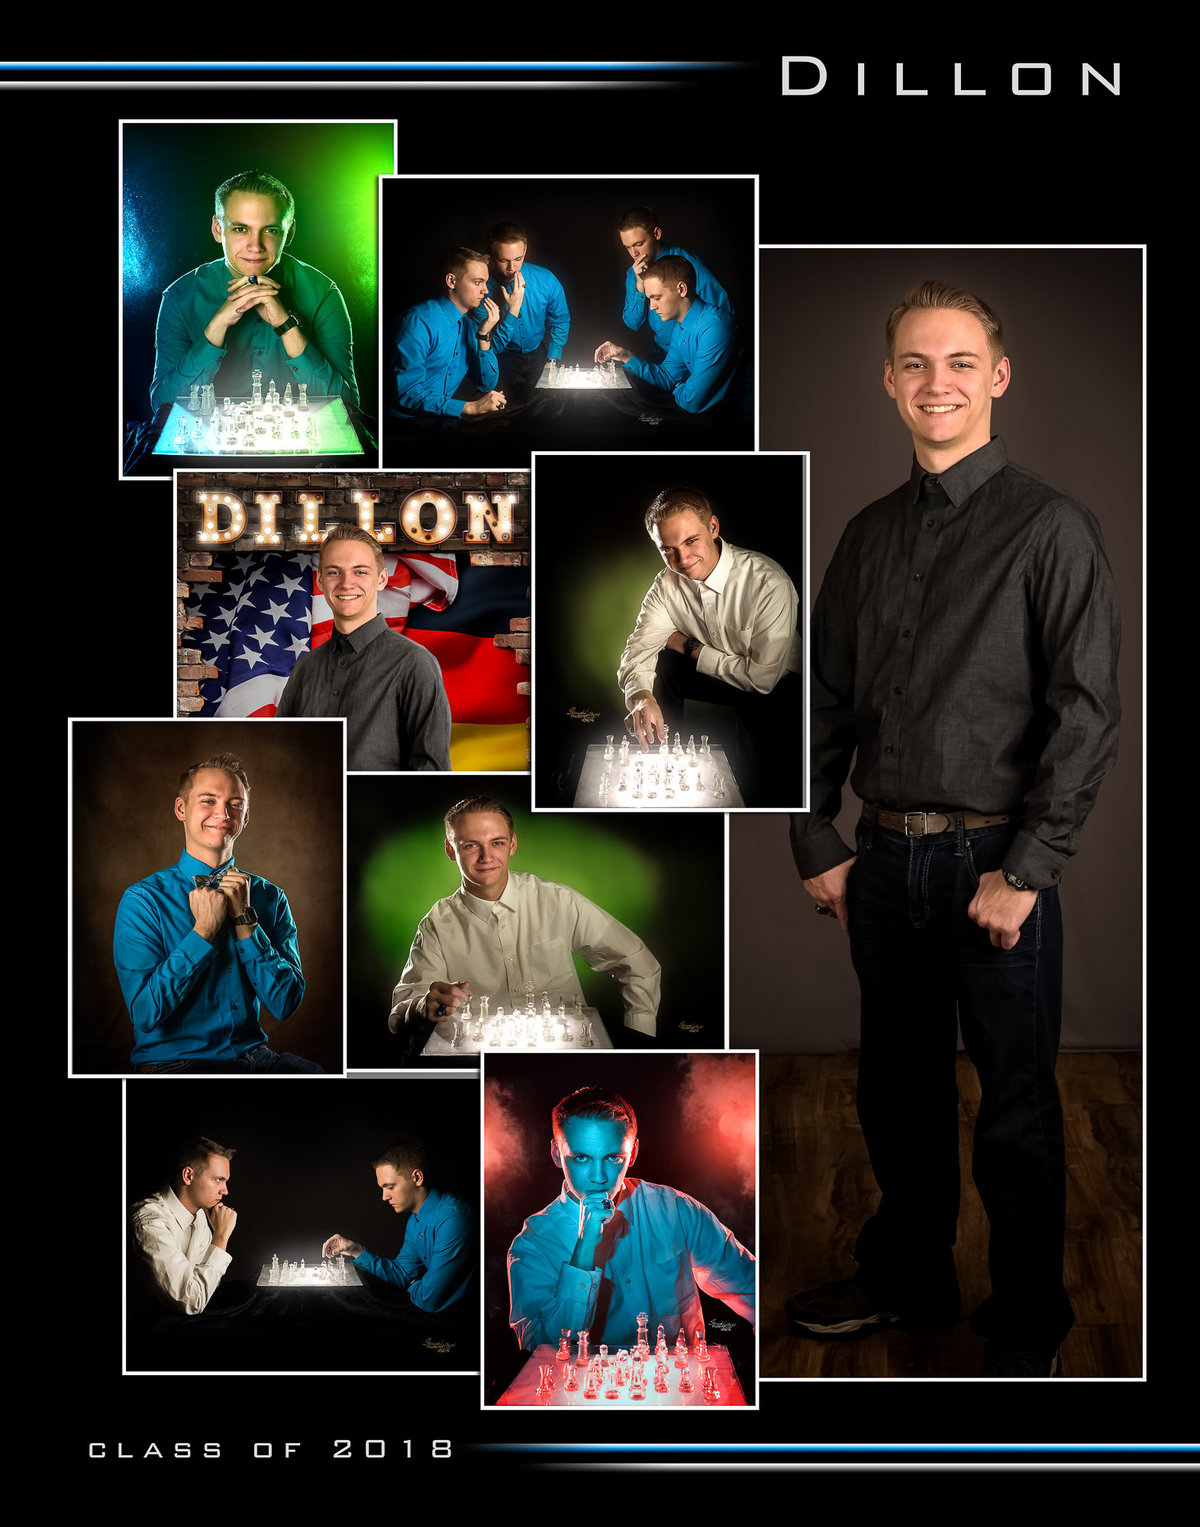 Senior Boy Collage Photo by Stacy Holbert, Booneville AR